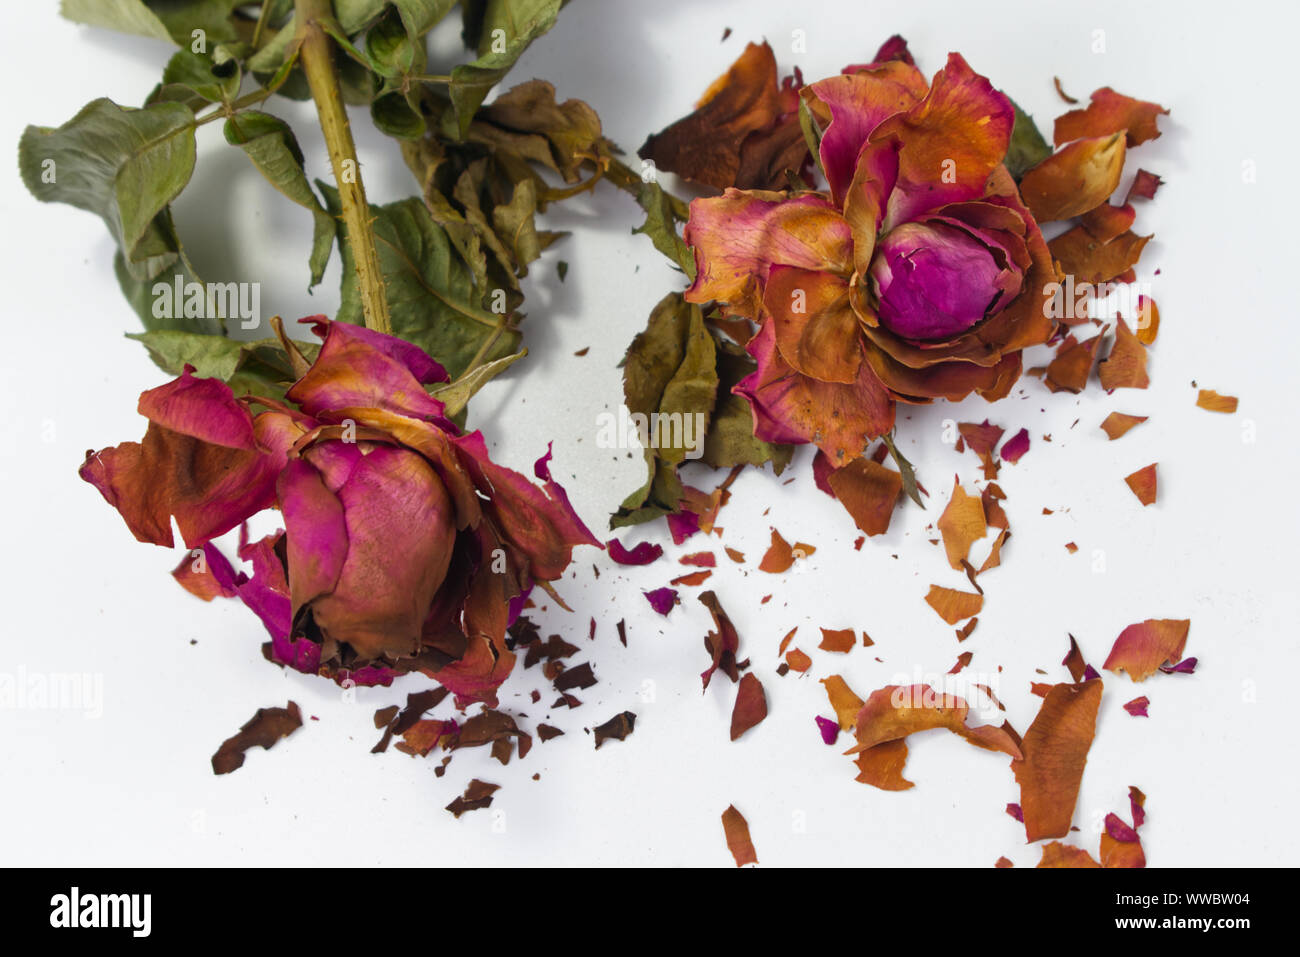 Dried red roses with fractures of rose petals on white background. Concept for aging love, bitter romance. Stock Photo